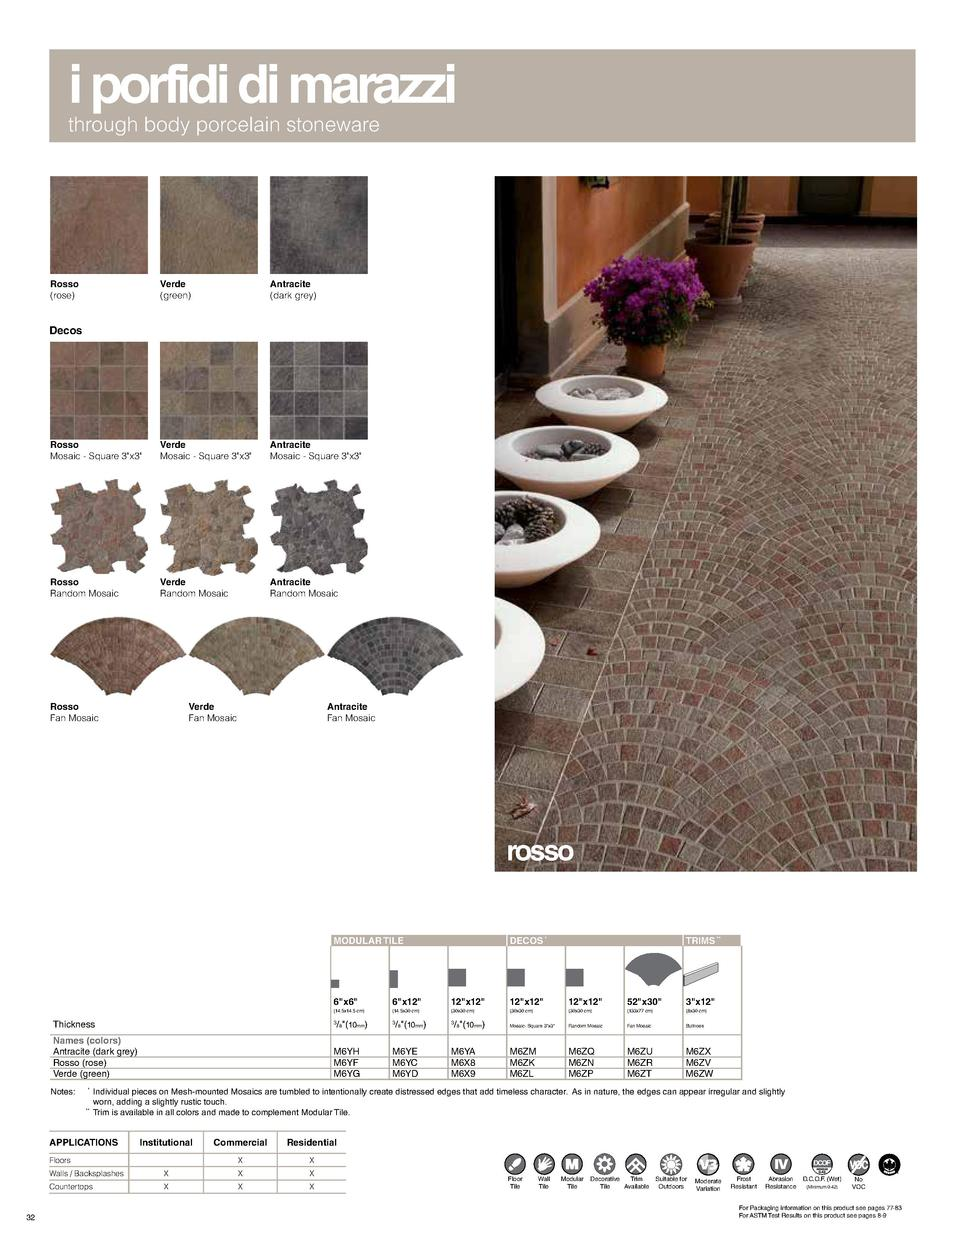 i porfidi di marazzi through body porcelain stoneware  Rosso  rose   Verde  green   Antracite  dark grey   Rosso Mosaic - ...